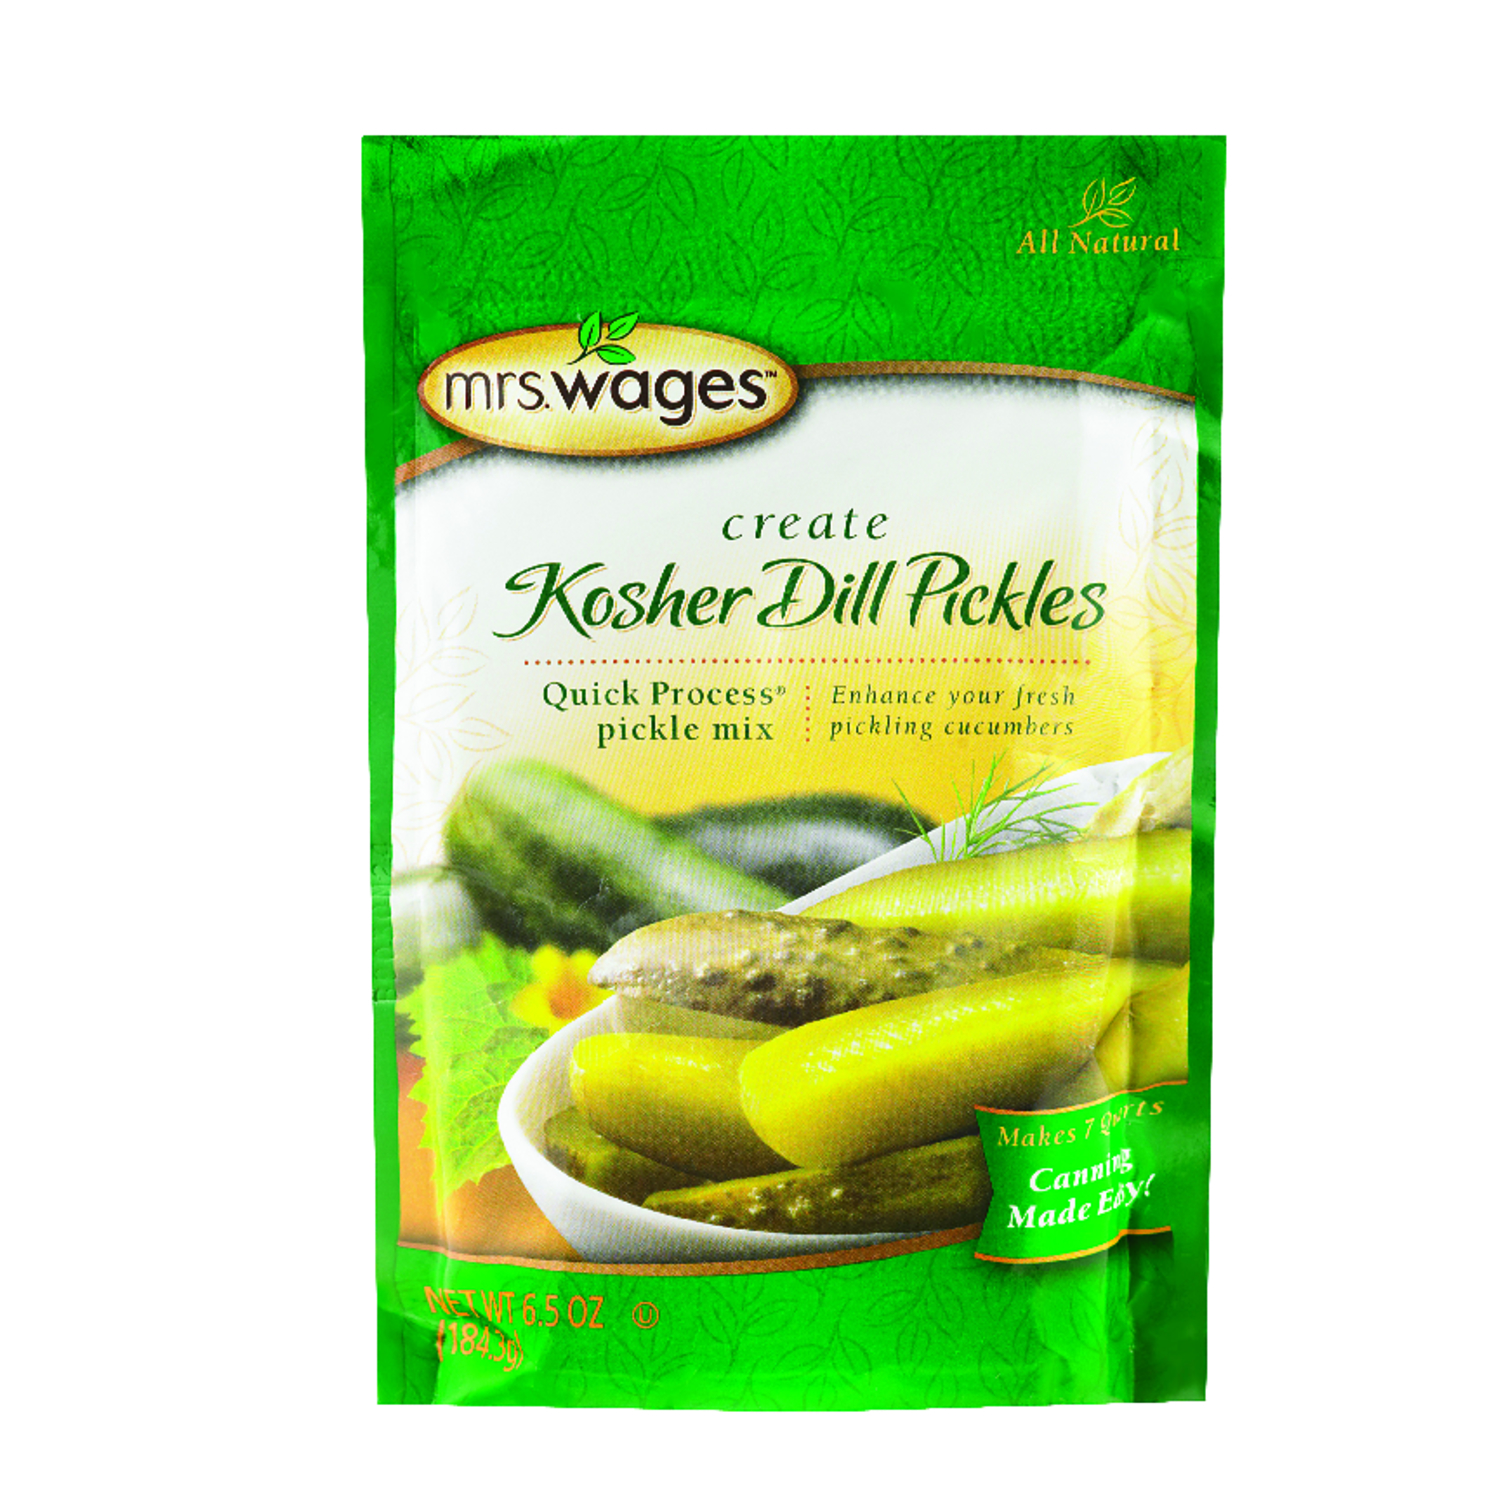 Mrs. Wages  Kosher Dill Pickle Mix  1 pk 6.5 oz.